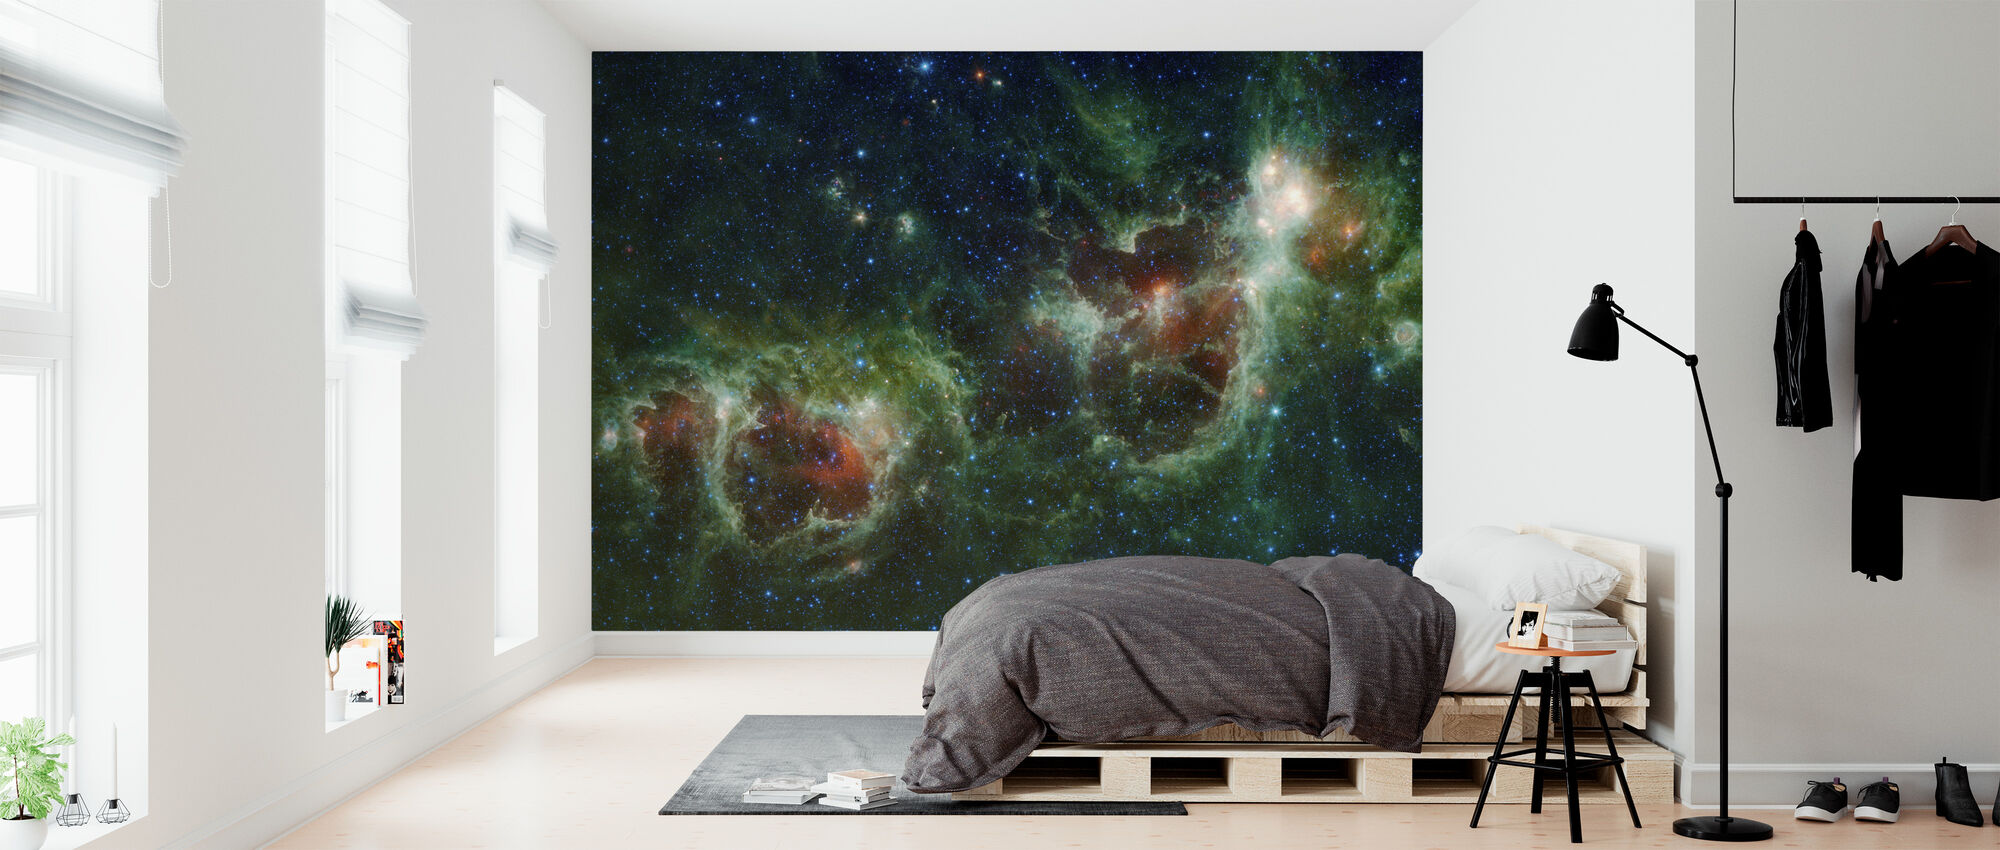 Outer Space Cosmos - Wallpaper - Bedroom